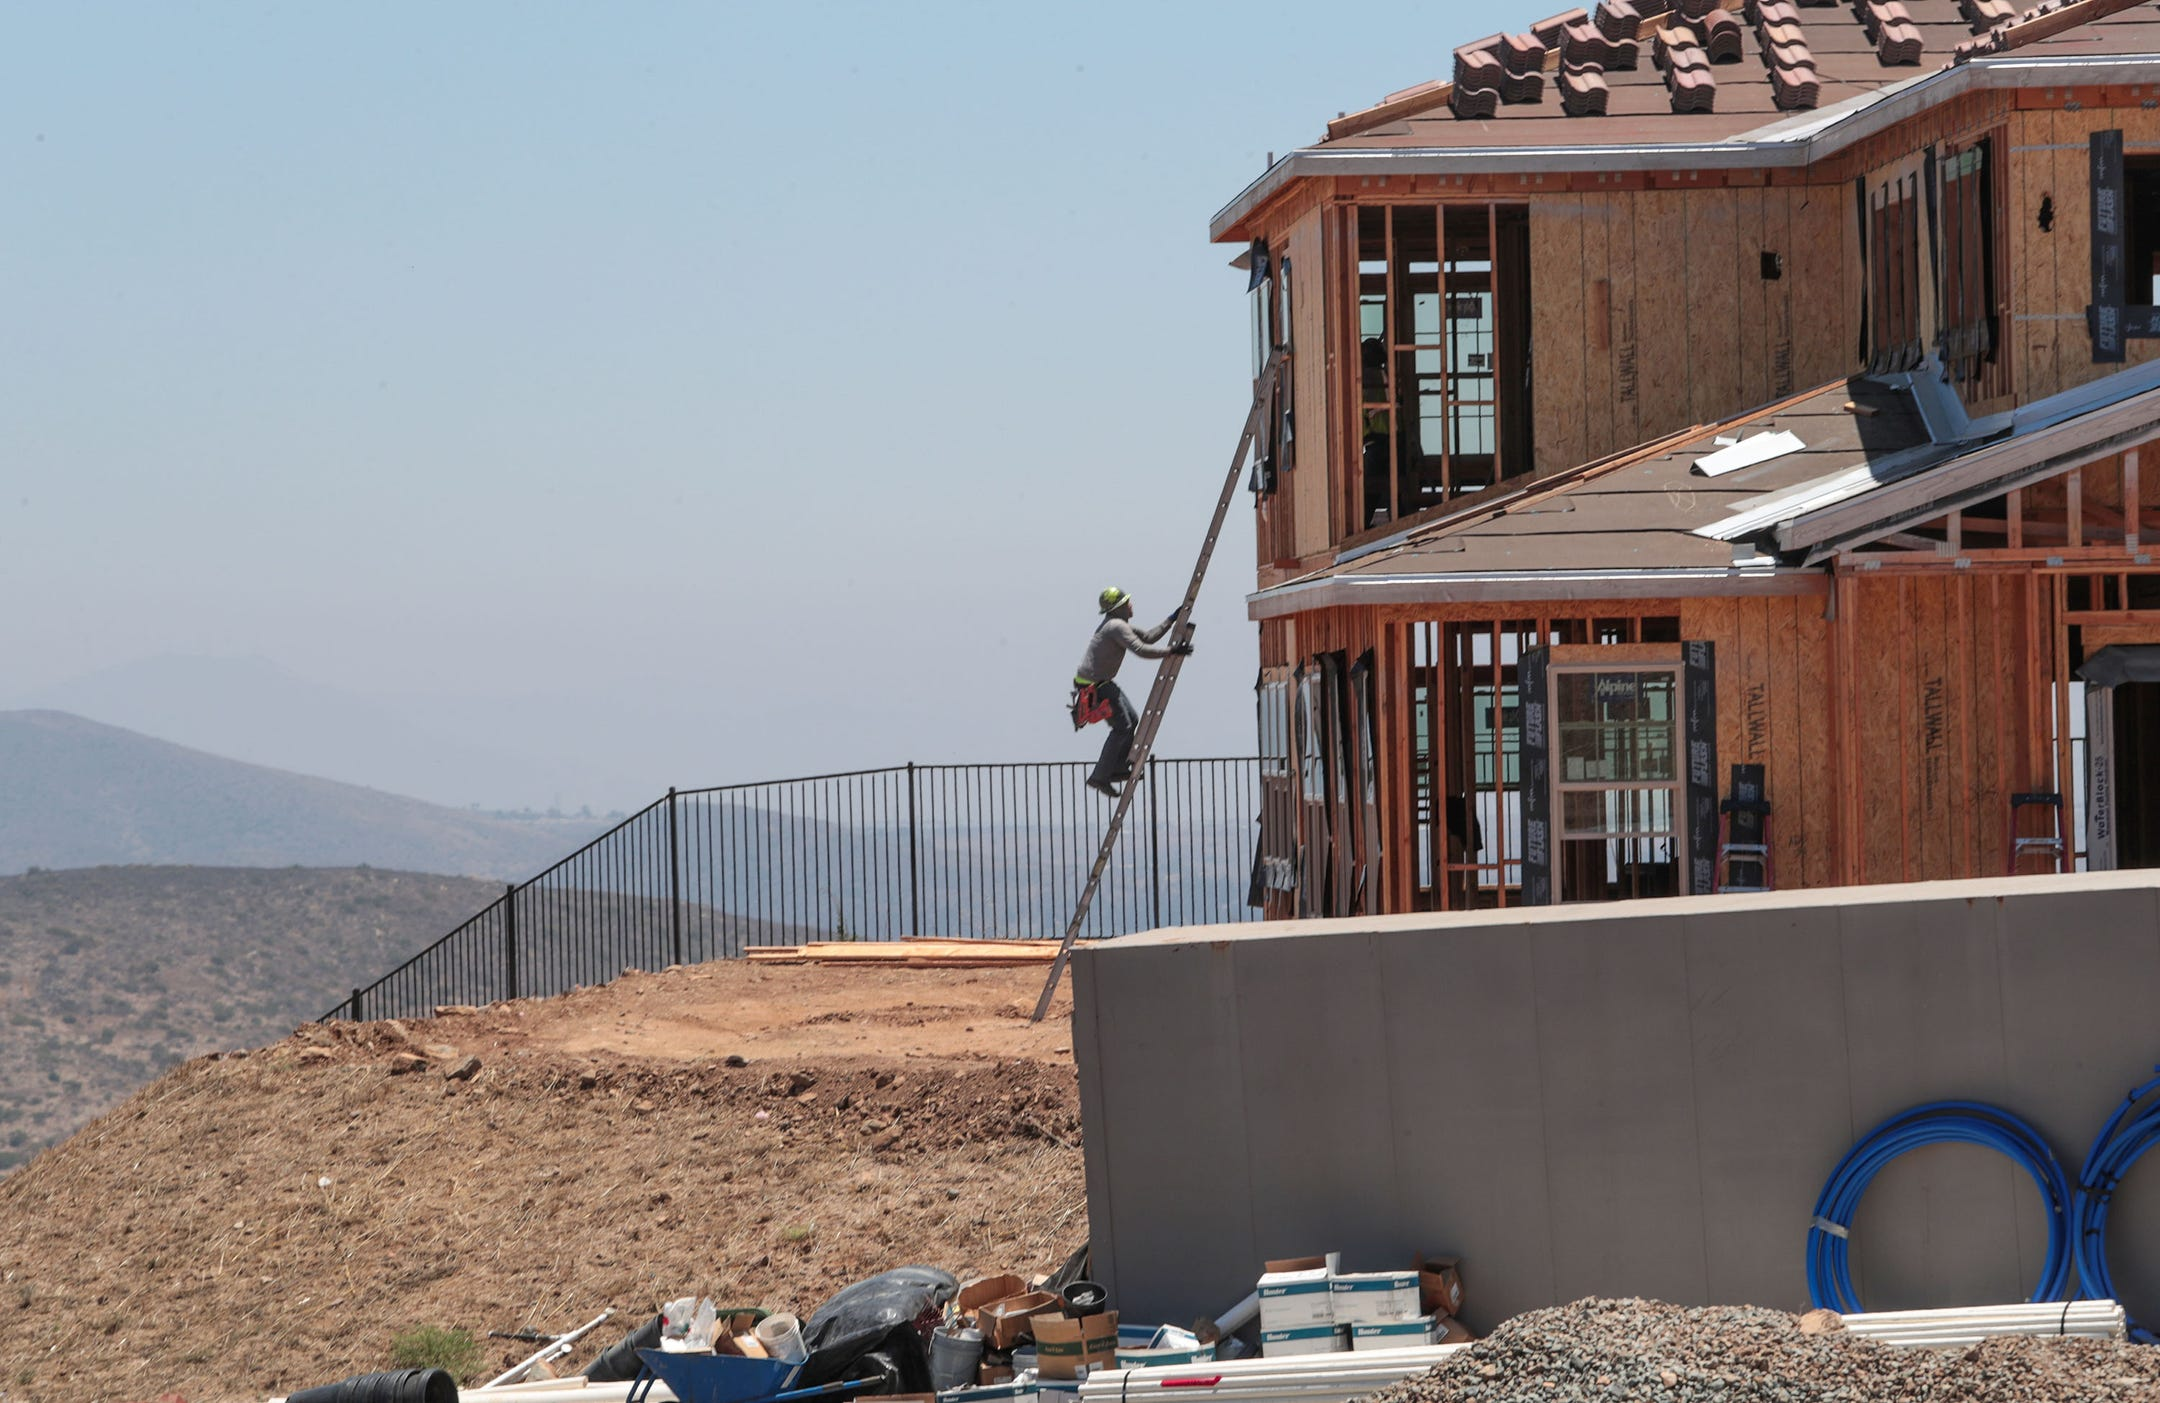 San Diego Fire Chief OKs new homes in